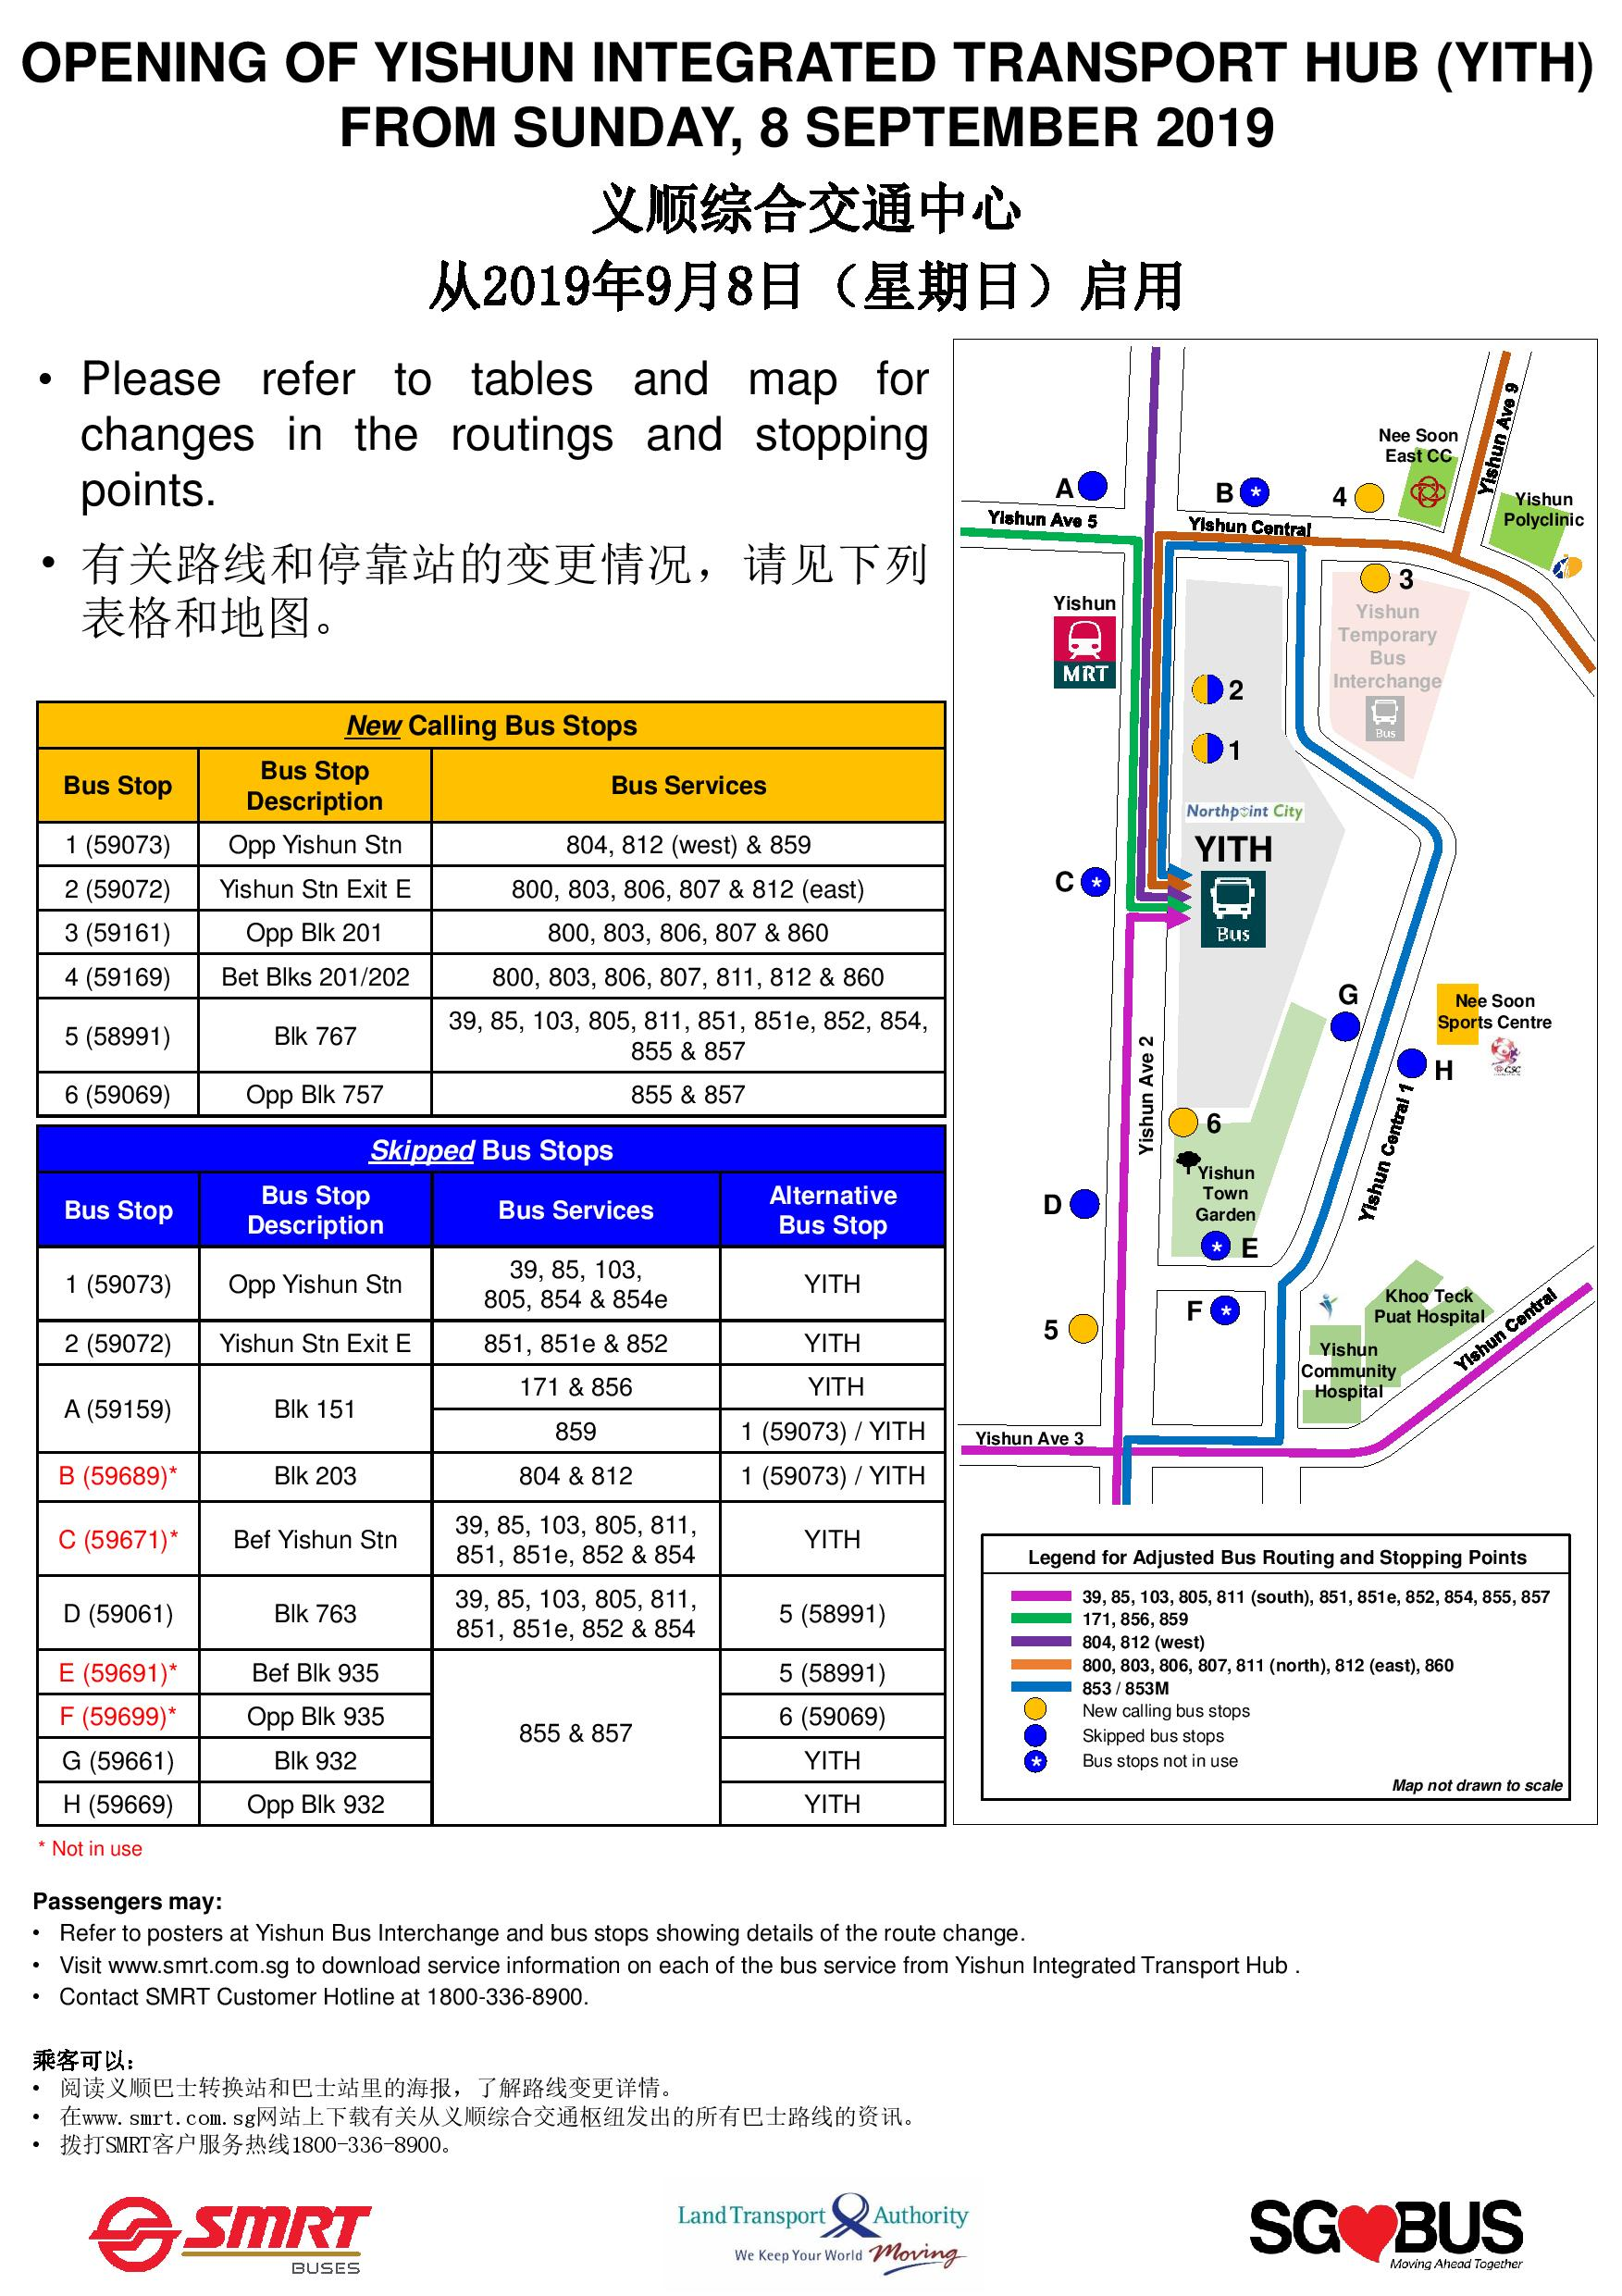 [Updated] Yishun Integrated Transport Hub Opening - Summary of Bus Service Changes